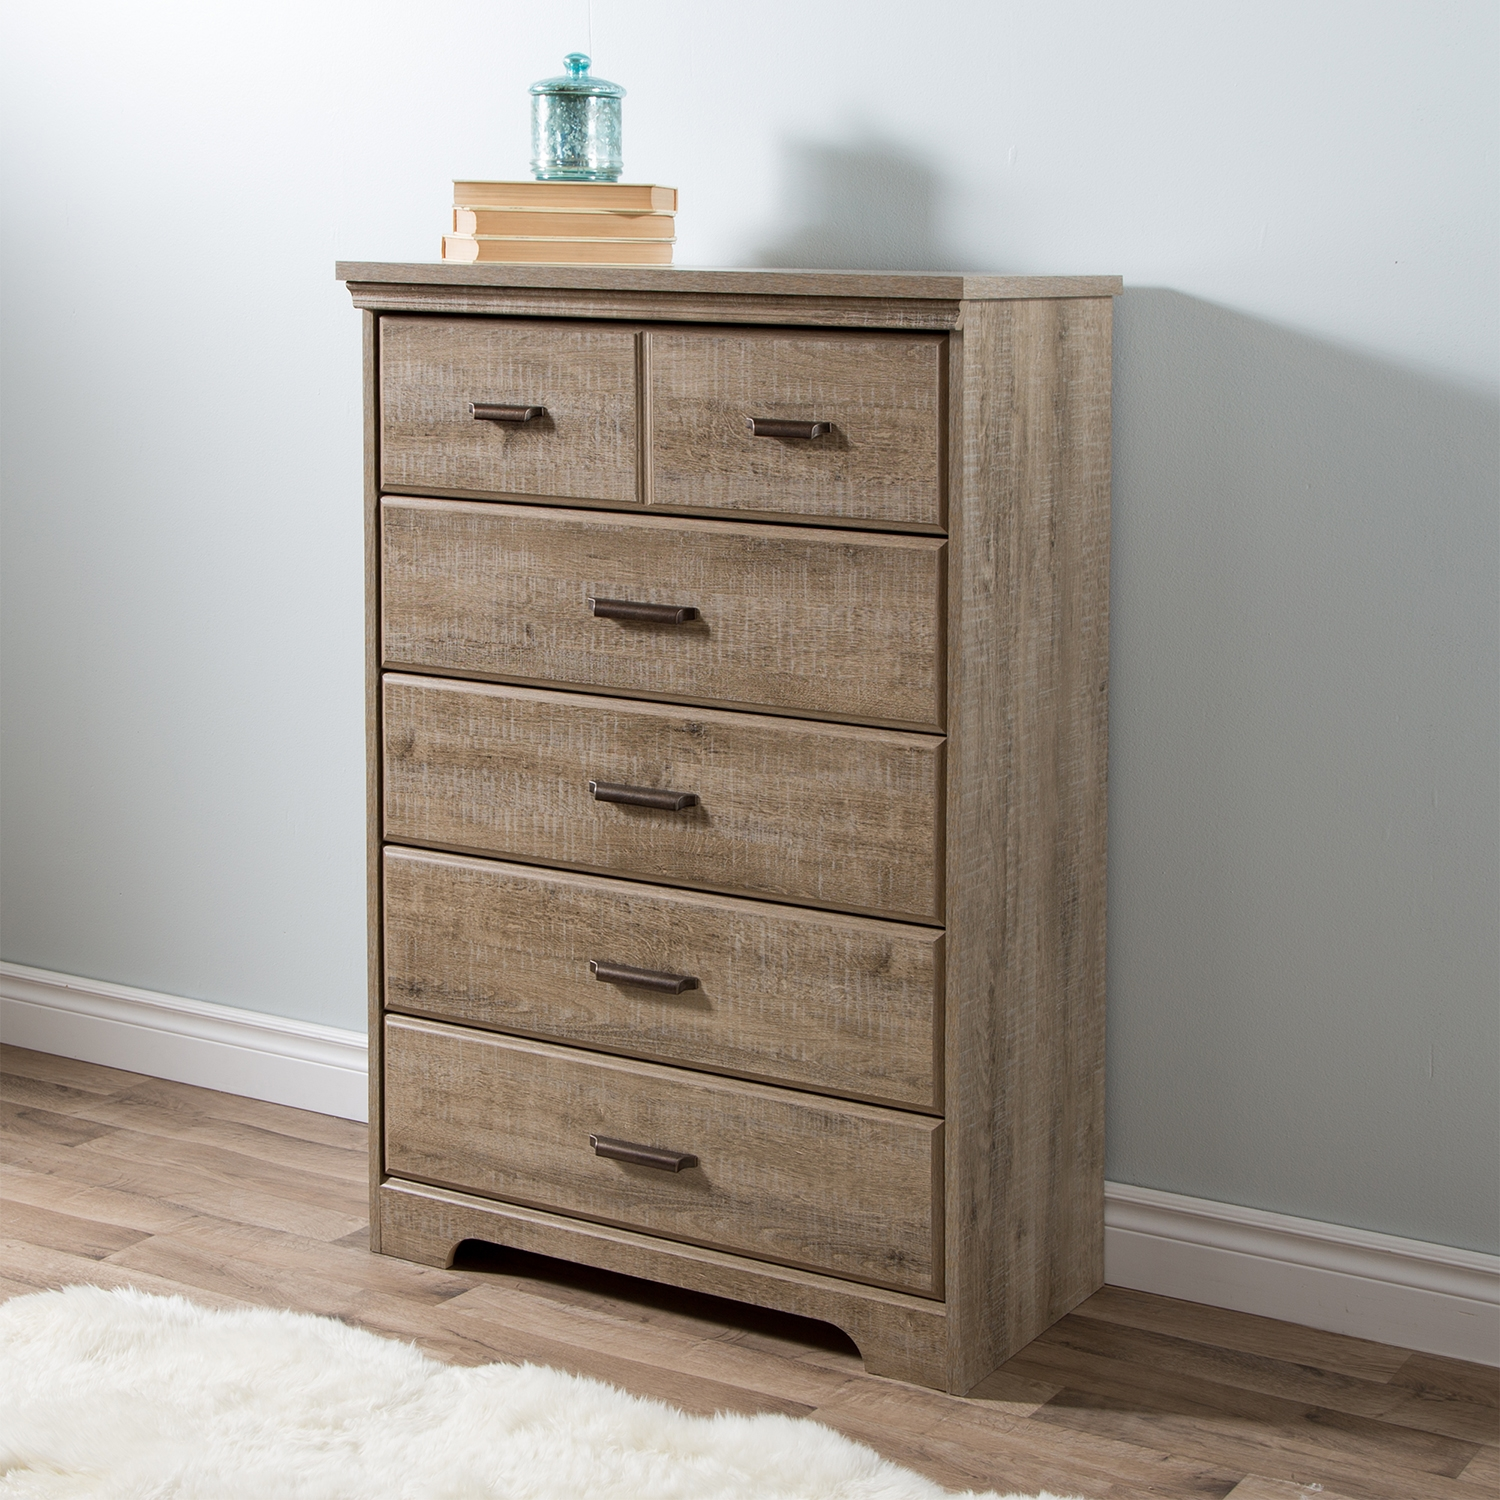 Versa 5 Drawers Chest - Weathered Oak - SS-9066035